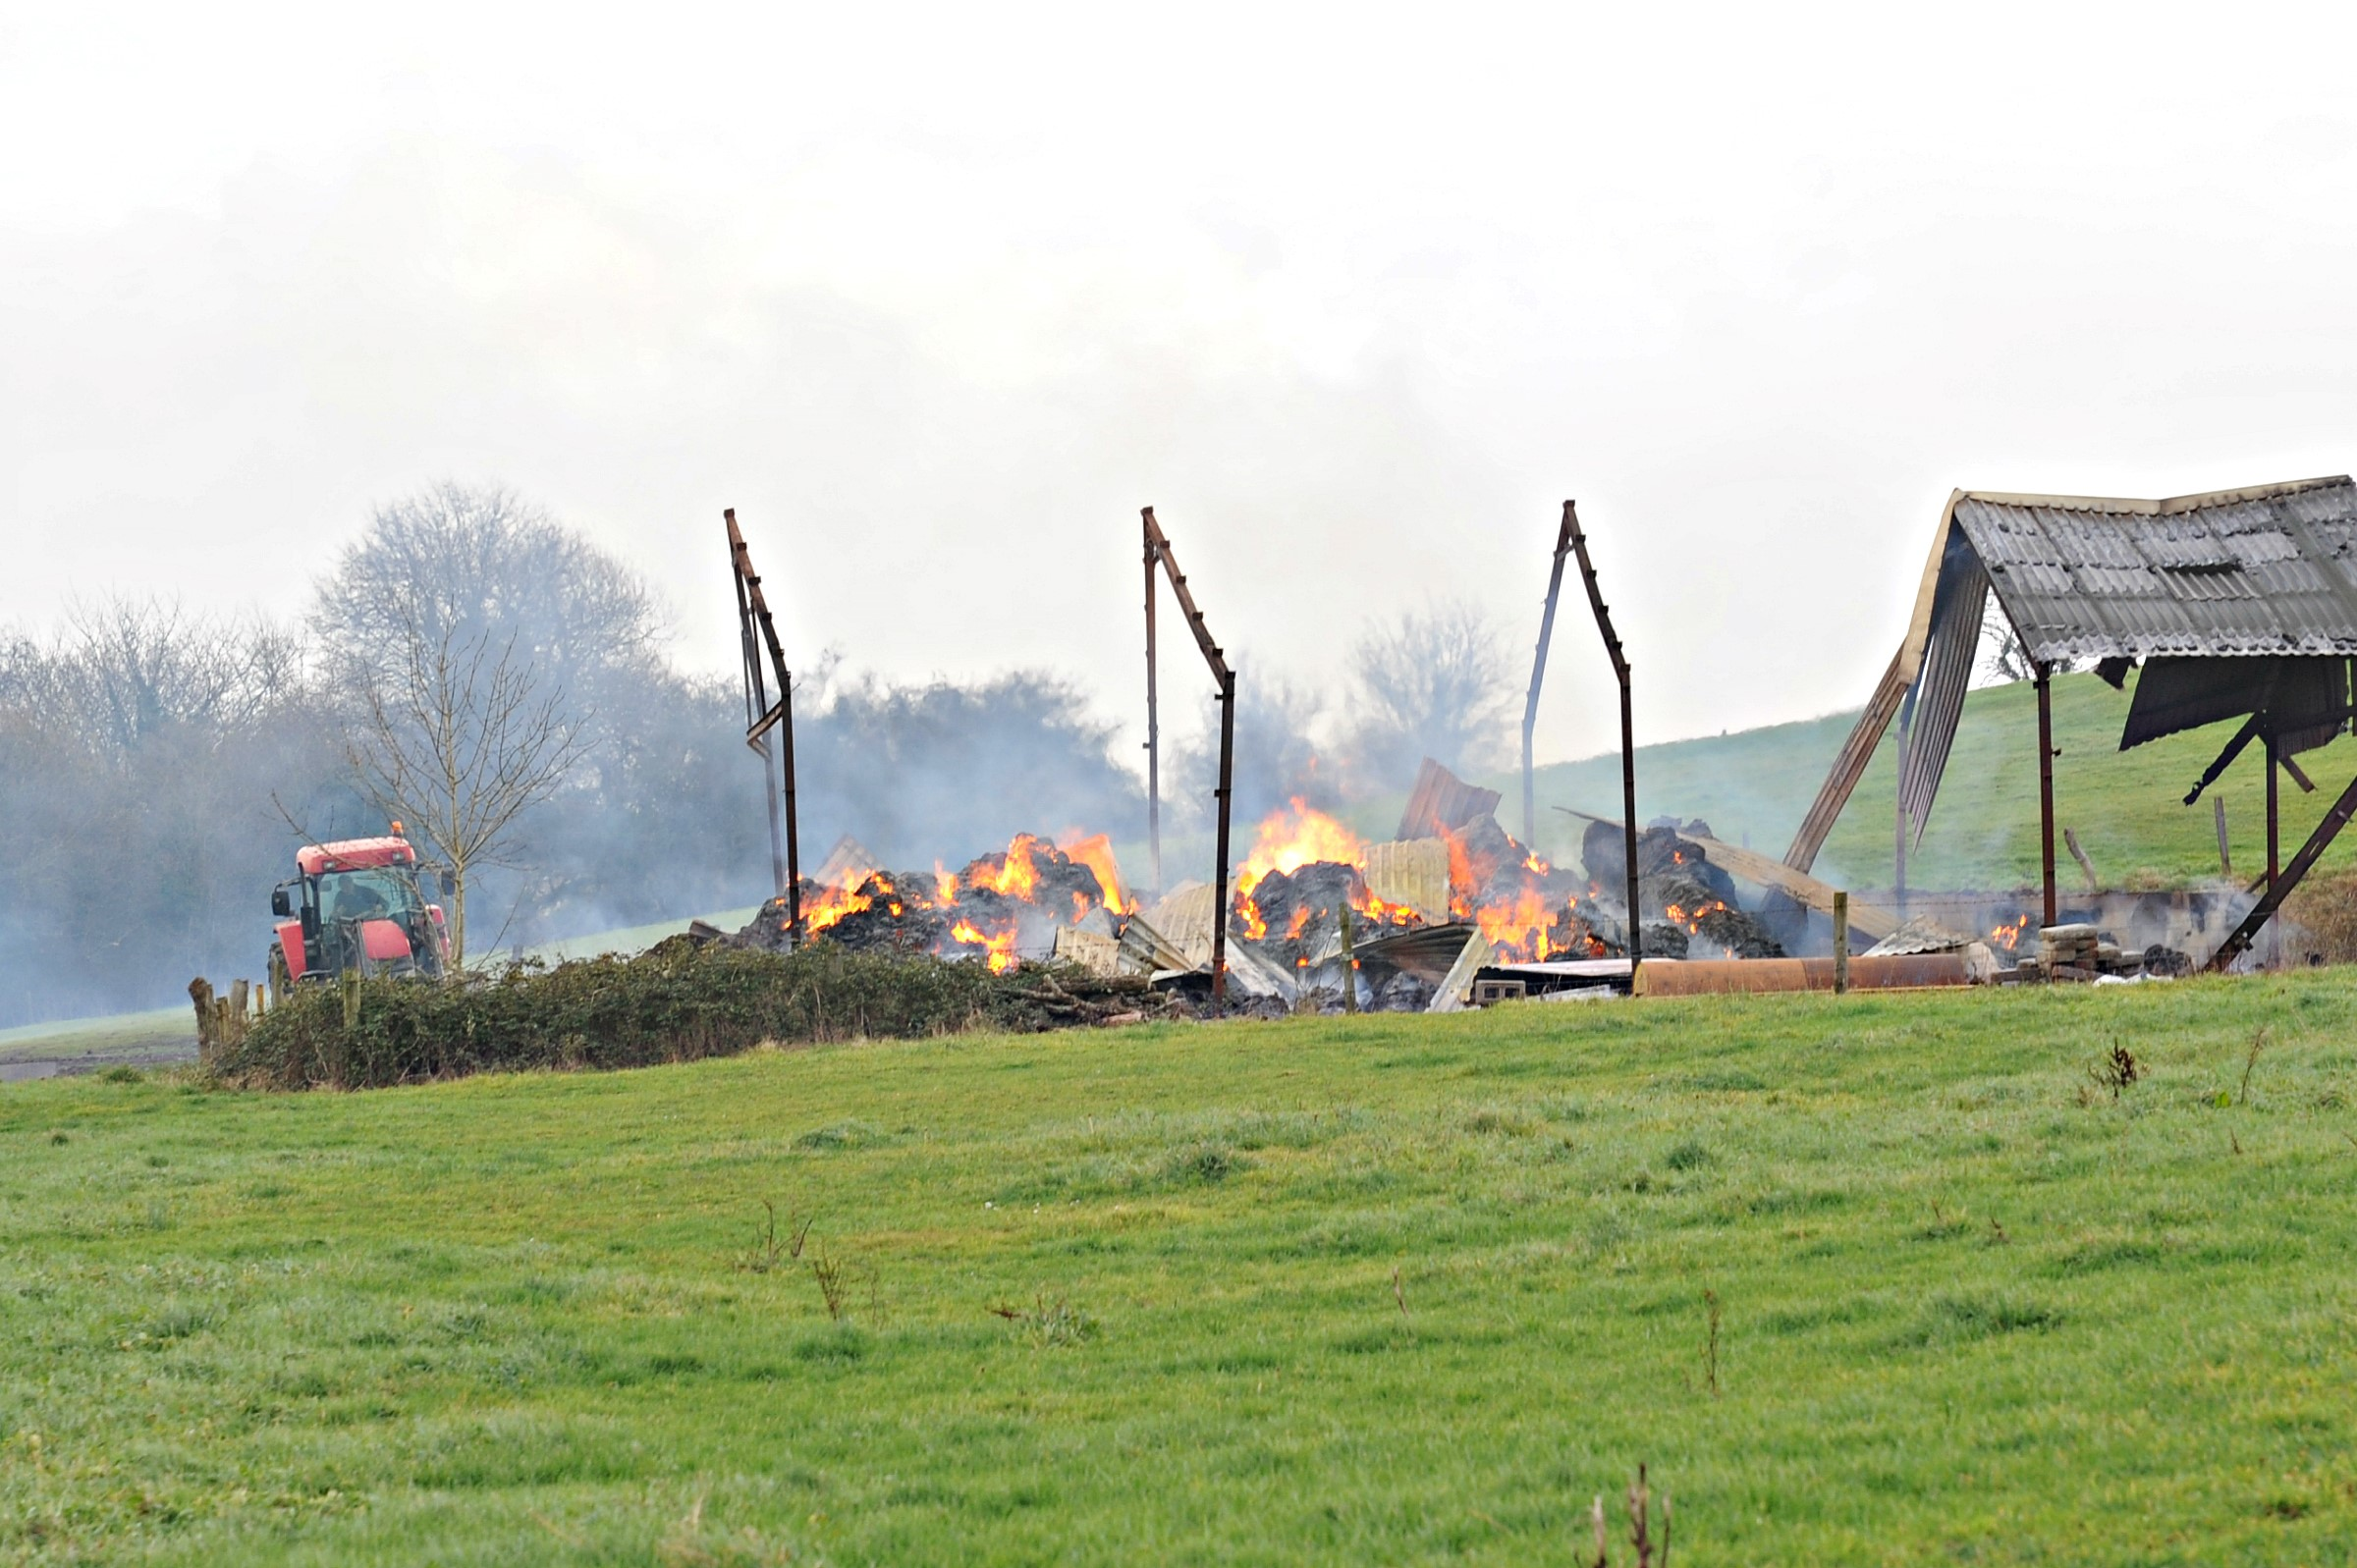 Farmer's New Year is not a happy one as barn goes up in smoke